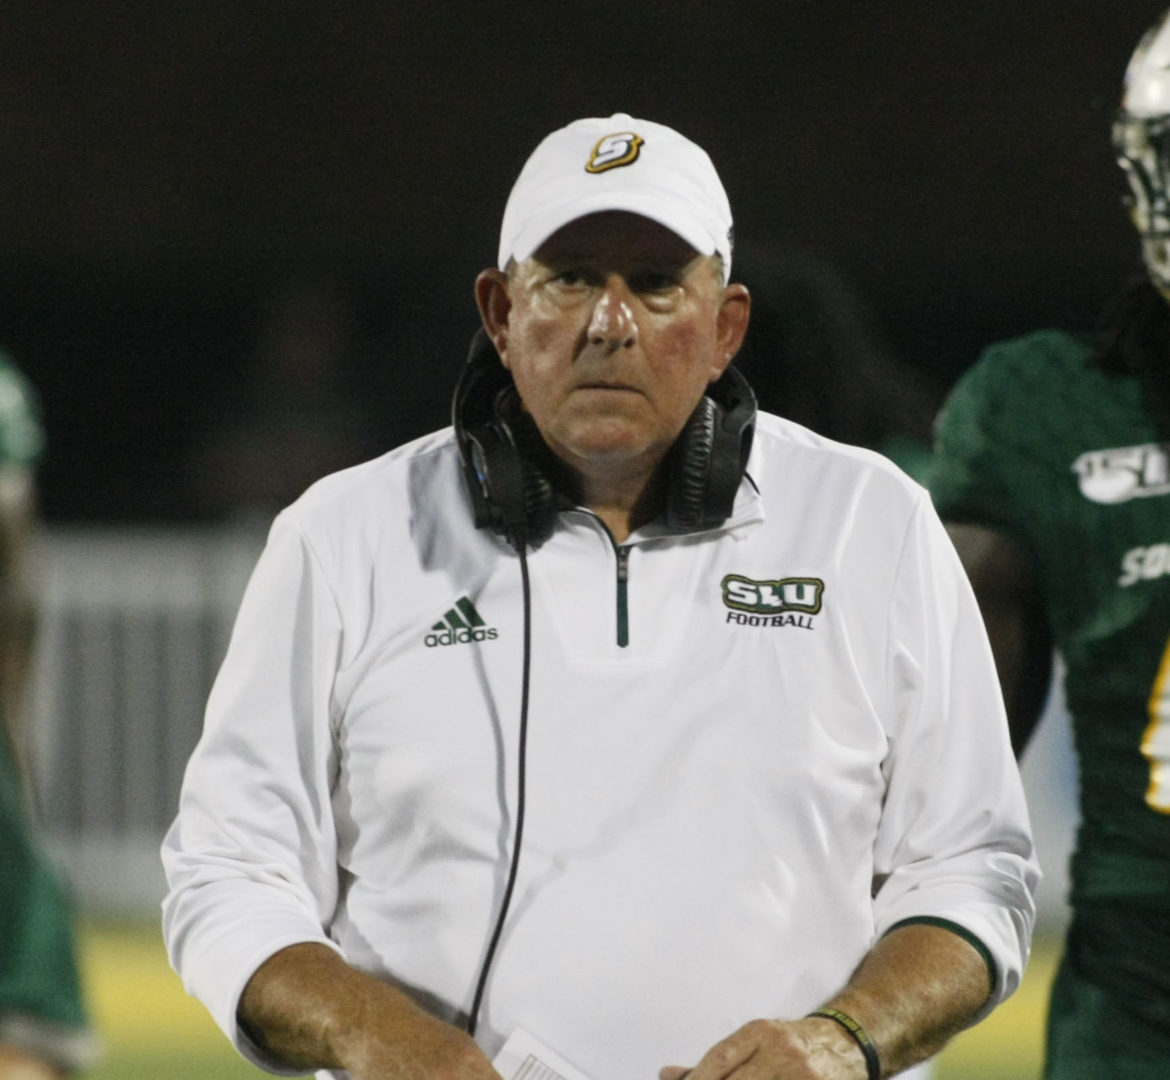 Southeastern Louisiana Lions get 450 grand to play at Ole Miss, but they say they are coming for much more